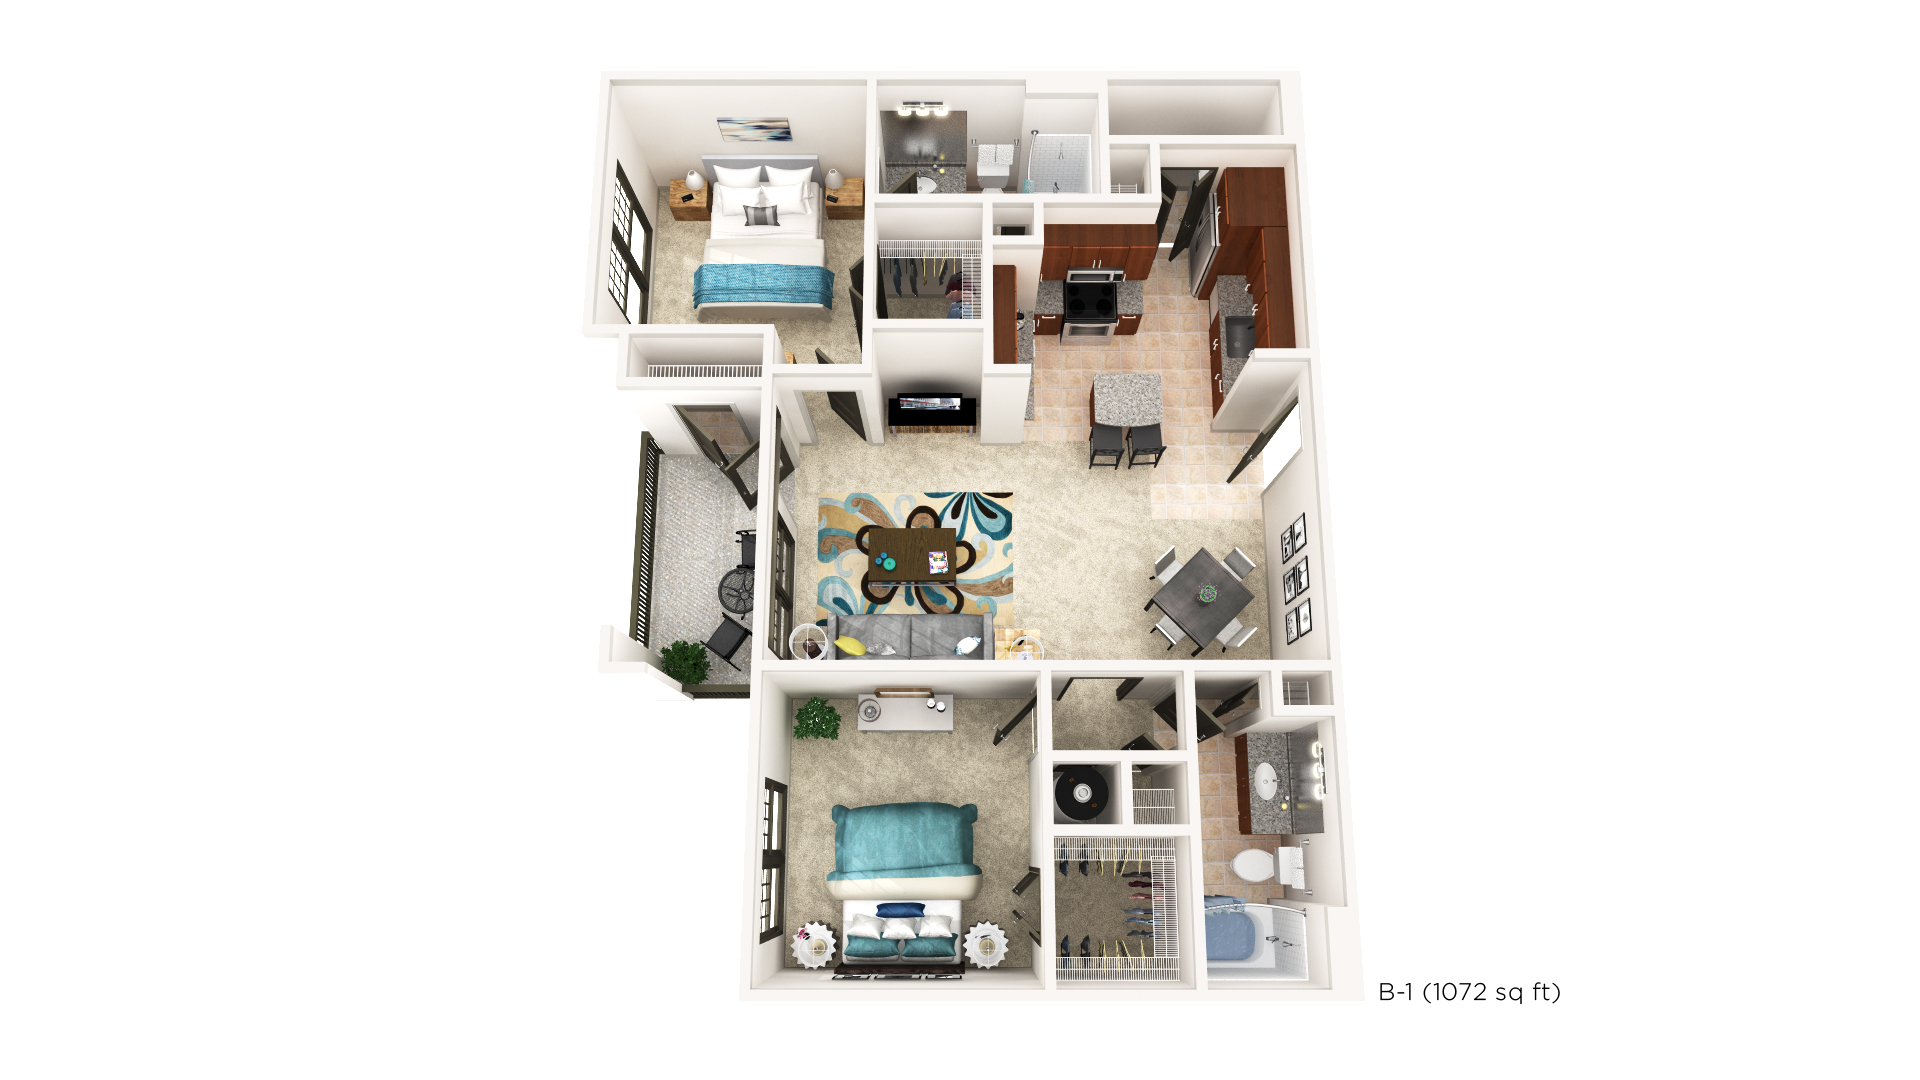 Brookleigh Flats Luxury Apartment Homes - Floorplan - B-1